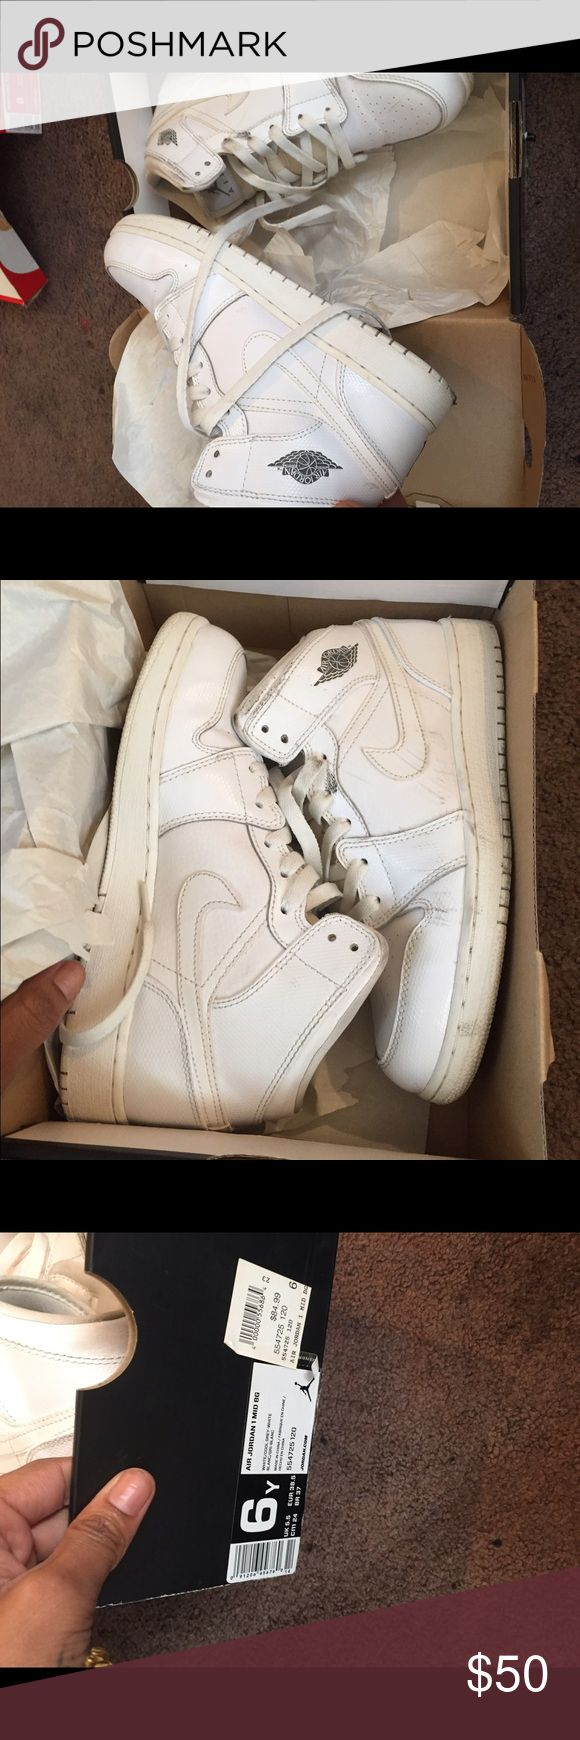 Jordan's 1's The all white Jordan 1's pretty dirty but can be used for practice with paint or reinvention. Size 6 in boys so 8 for women. Jordan Shoes Sneakers